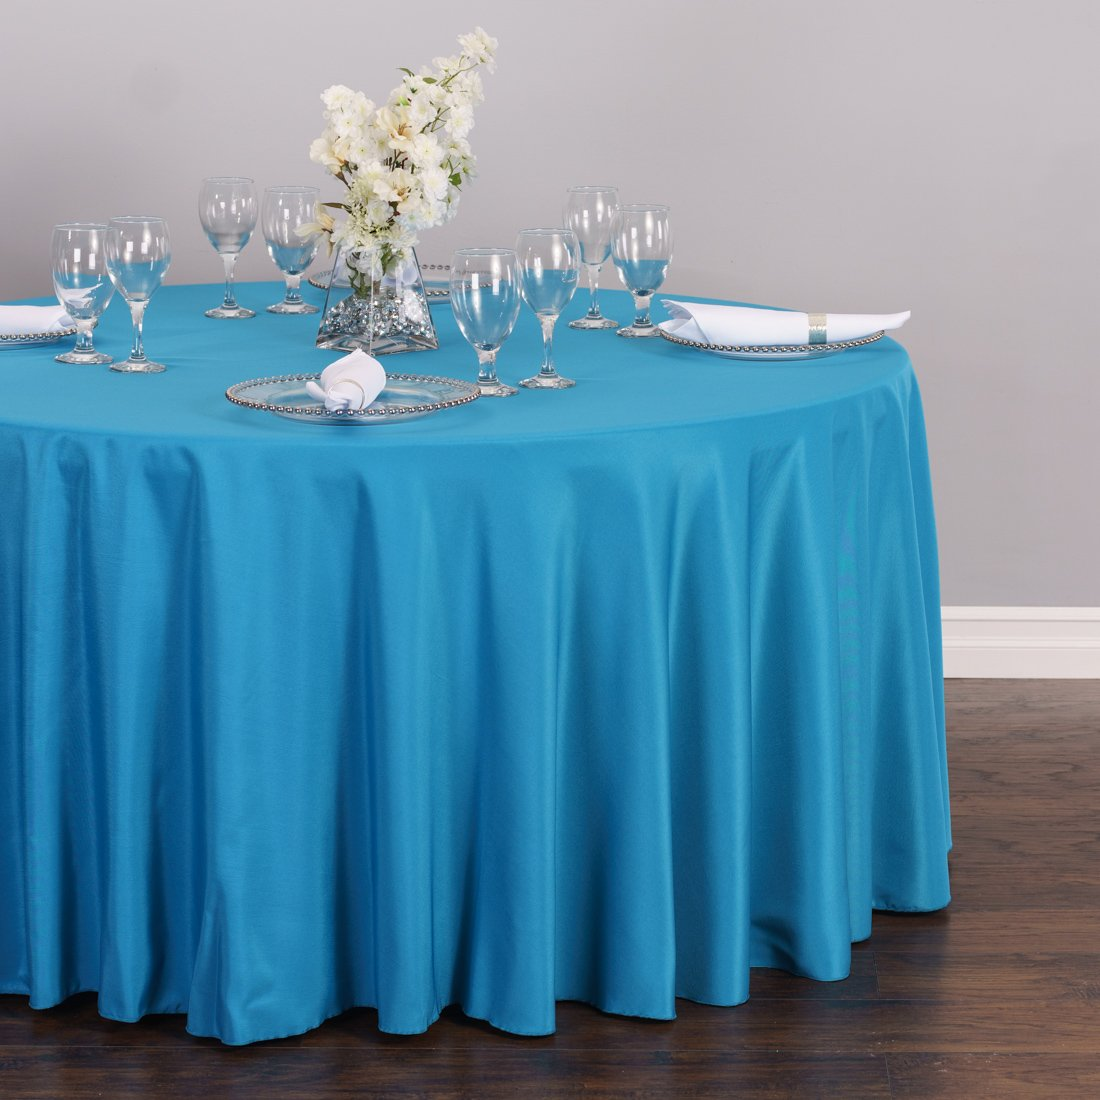 Amazoncom LinenTablecloth 120 Inch Round Polyester Tablecloth Caribbean